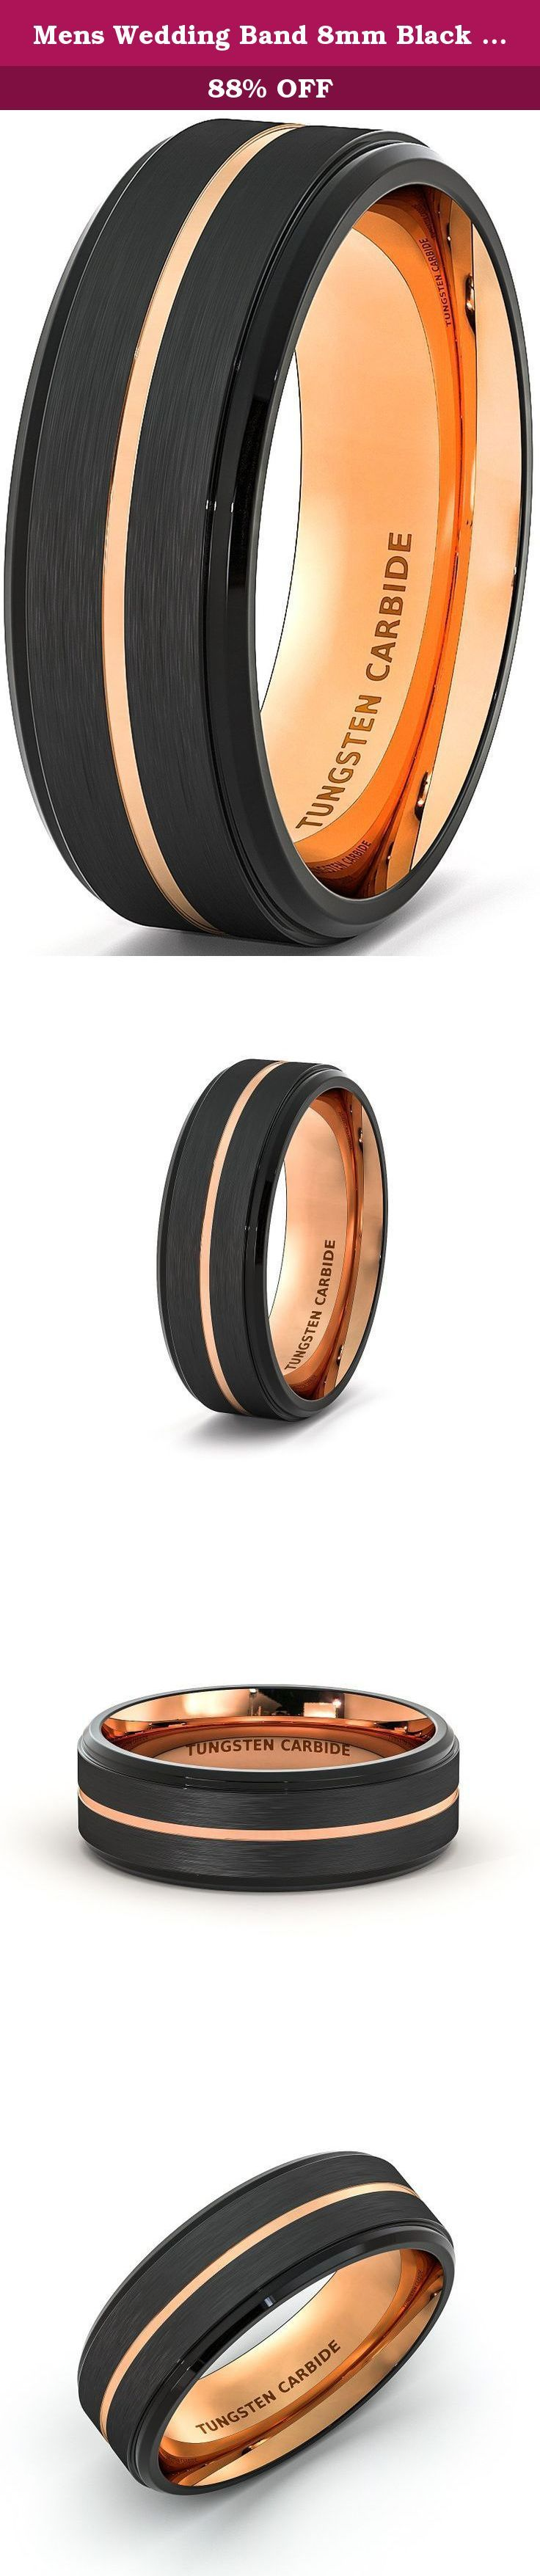 Mens Wedding Band 8mm Black Brushed Tungsten Ring Thin Rose Gold Groove Step Edge Comfort Fit (9.5). Width: 8mm Fit: Comfort Fit Thickness: 2.3mm, Weight: Approximately 12-17g depend on sizes, Surface: Brushed Edge: Step Edge, Color: Black and Rose Gold.